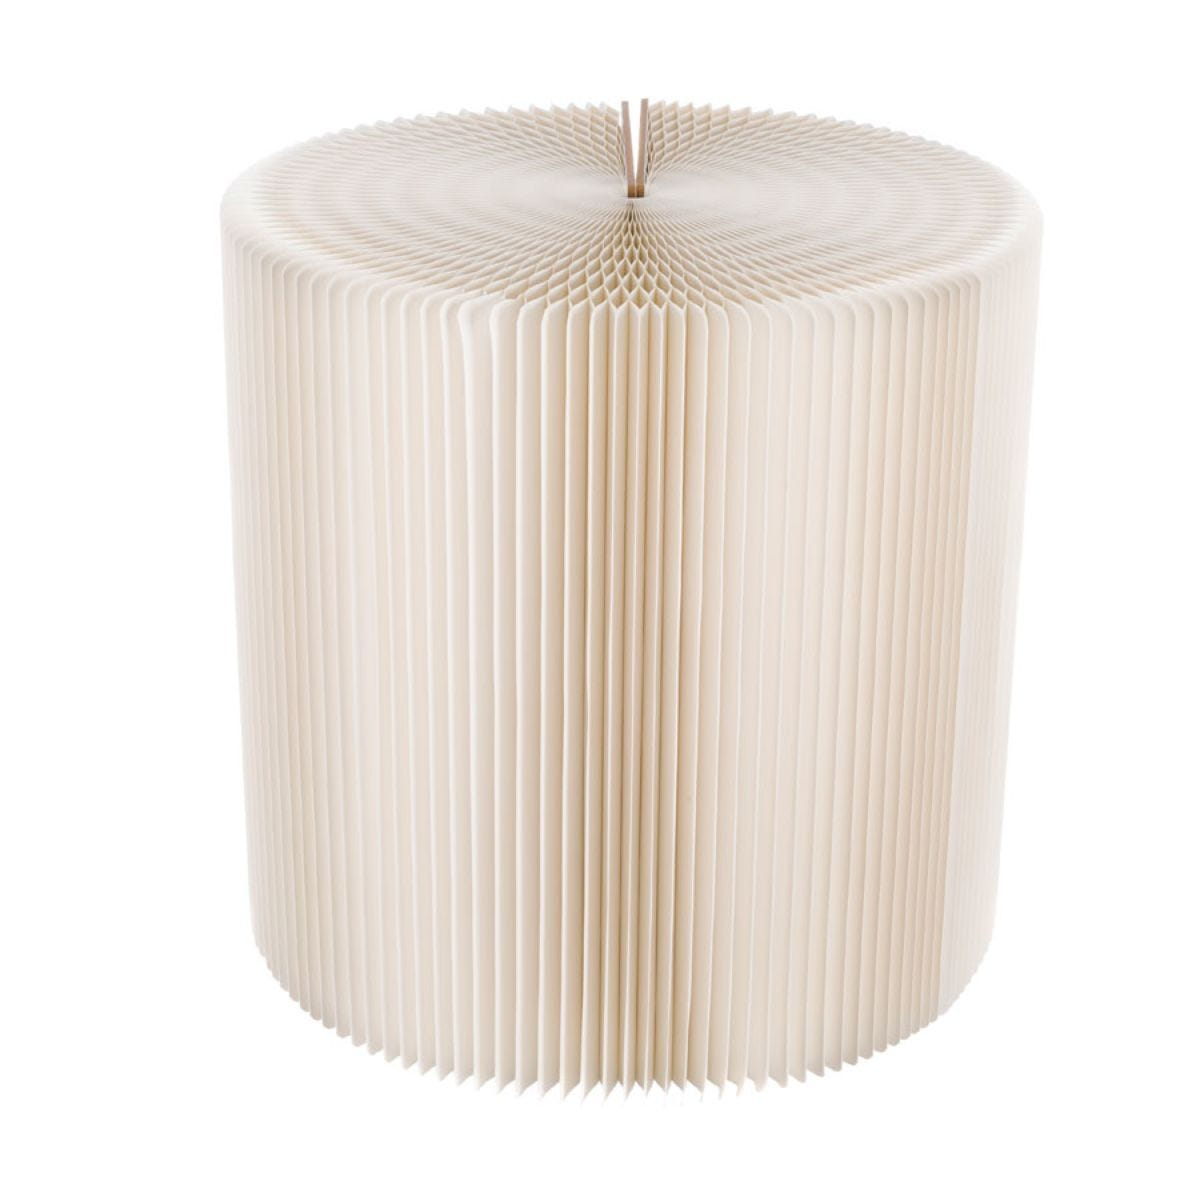 Paper Lounge 50cm Tall Concertina Table - White